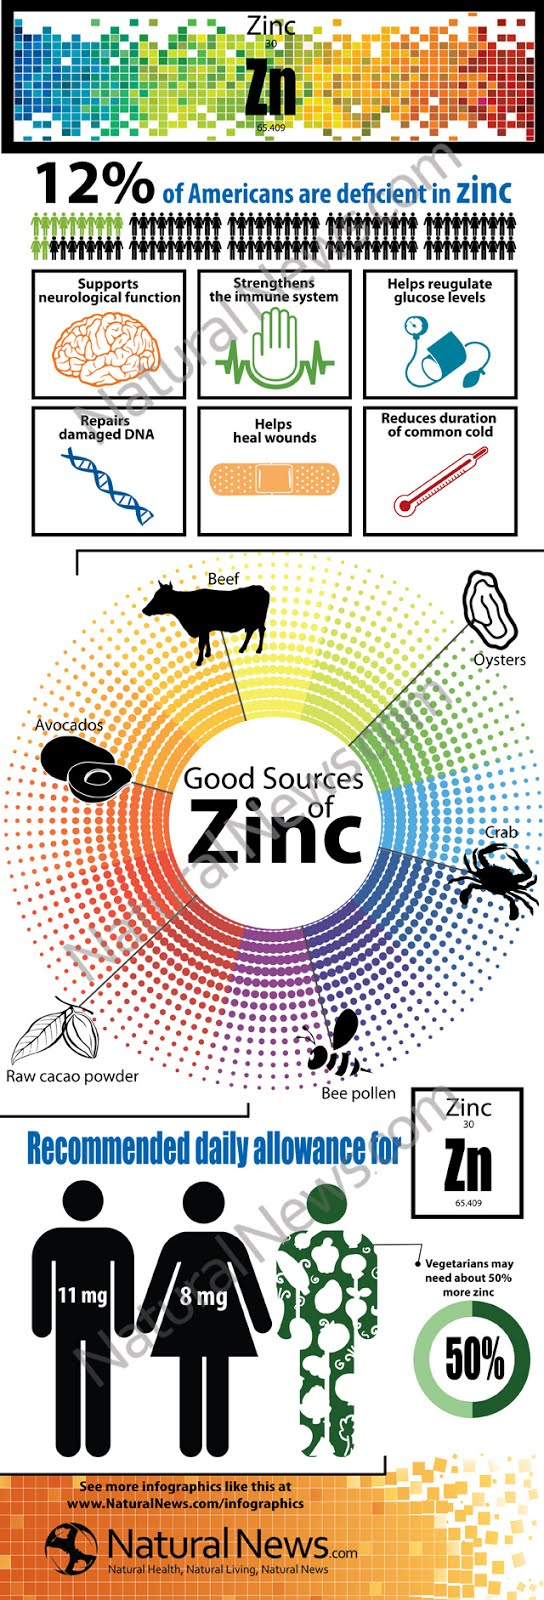 https://www.naturalnews.com/Infographic-Benefits-of-Zinc.html